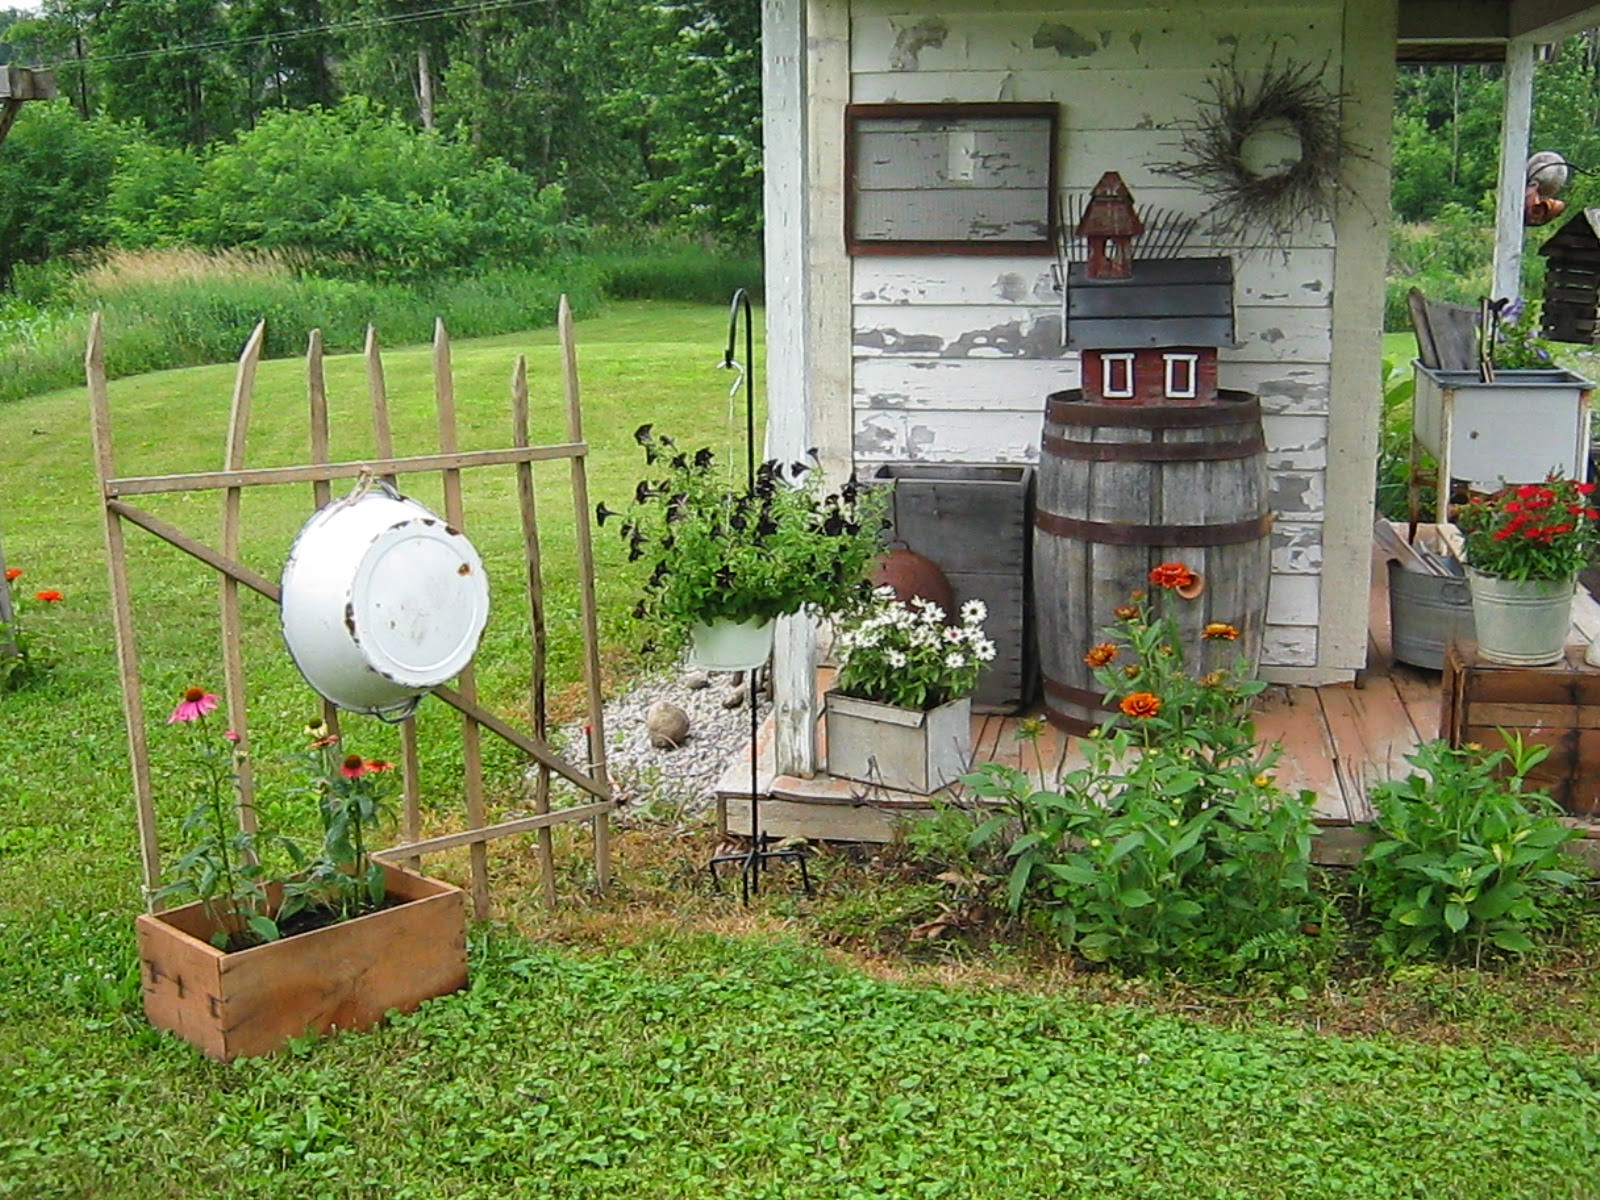 Primitive passion decorating garden shed expansion for Landscape decor ideas